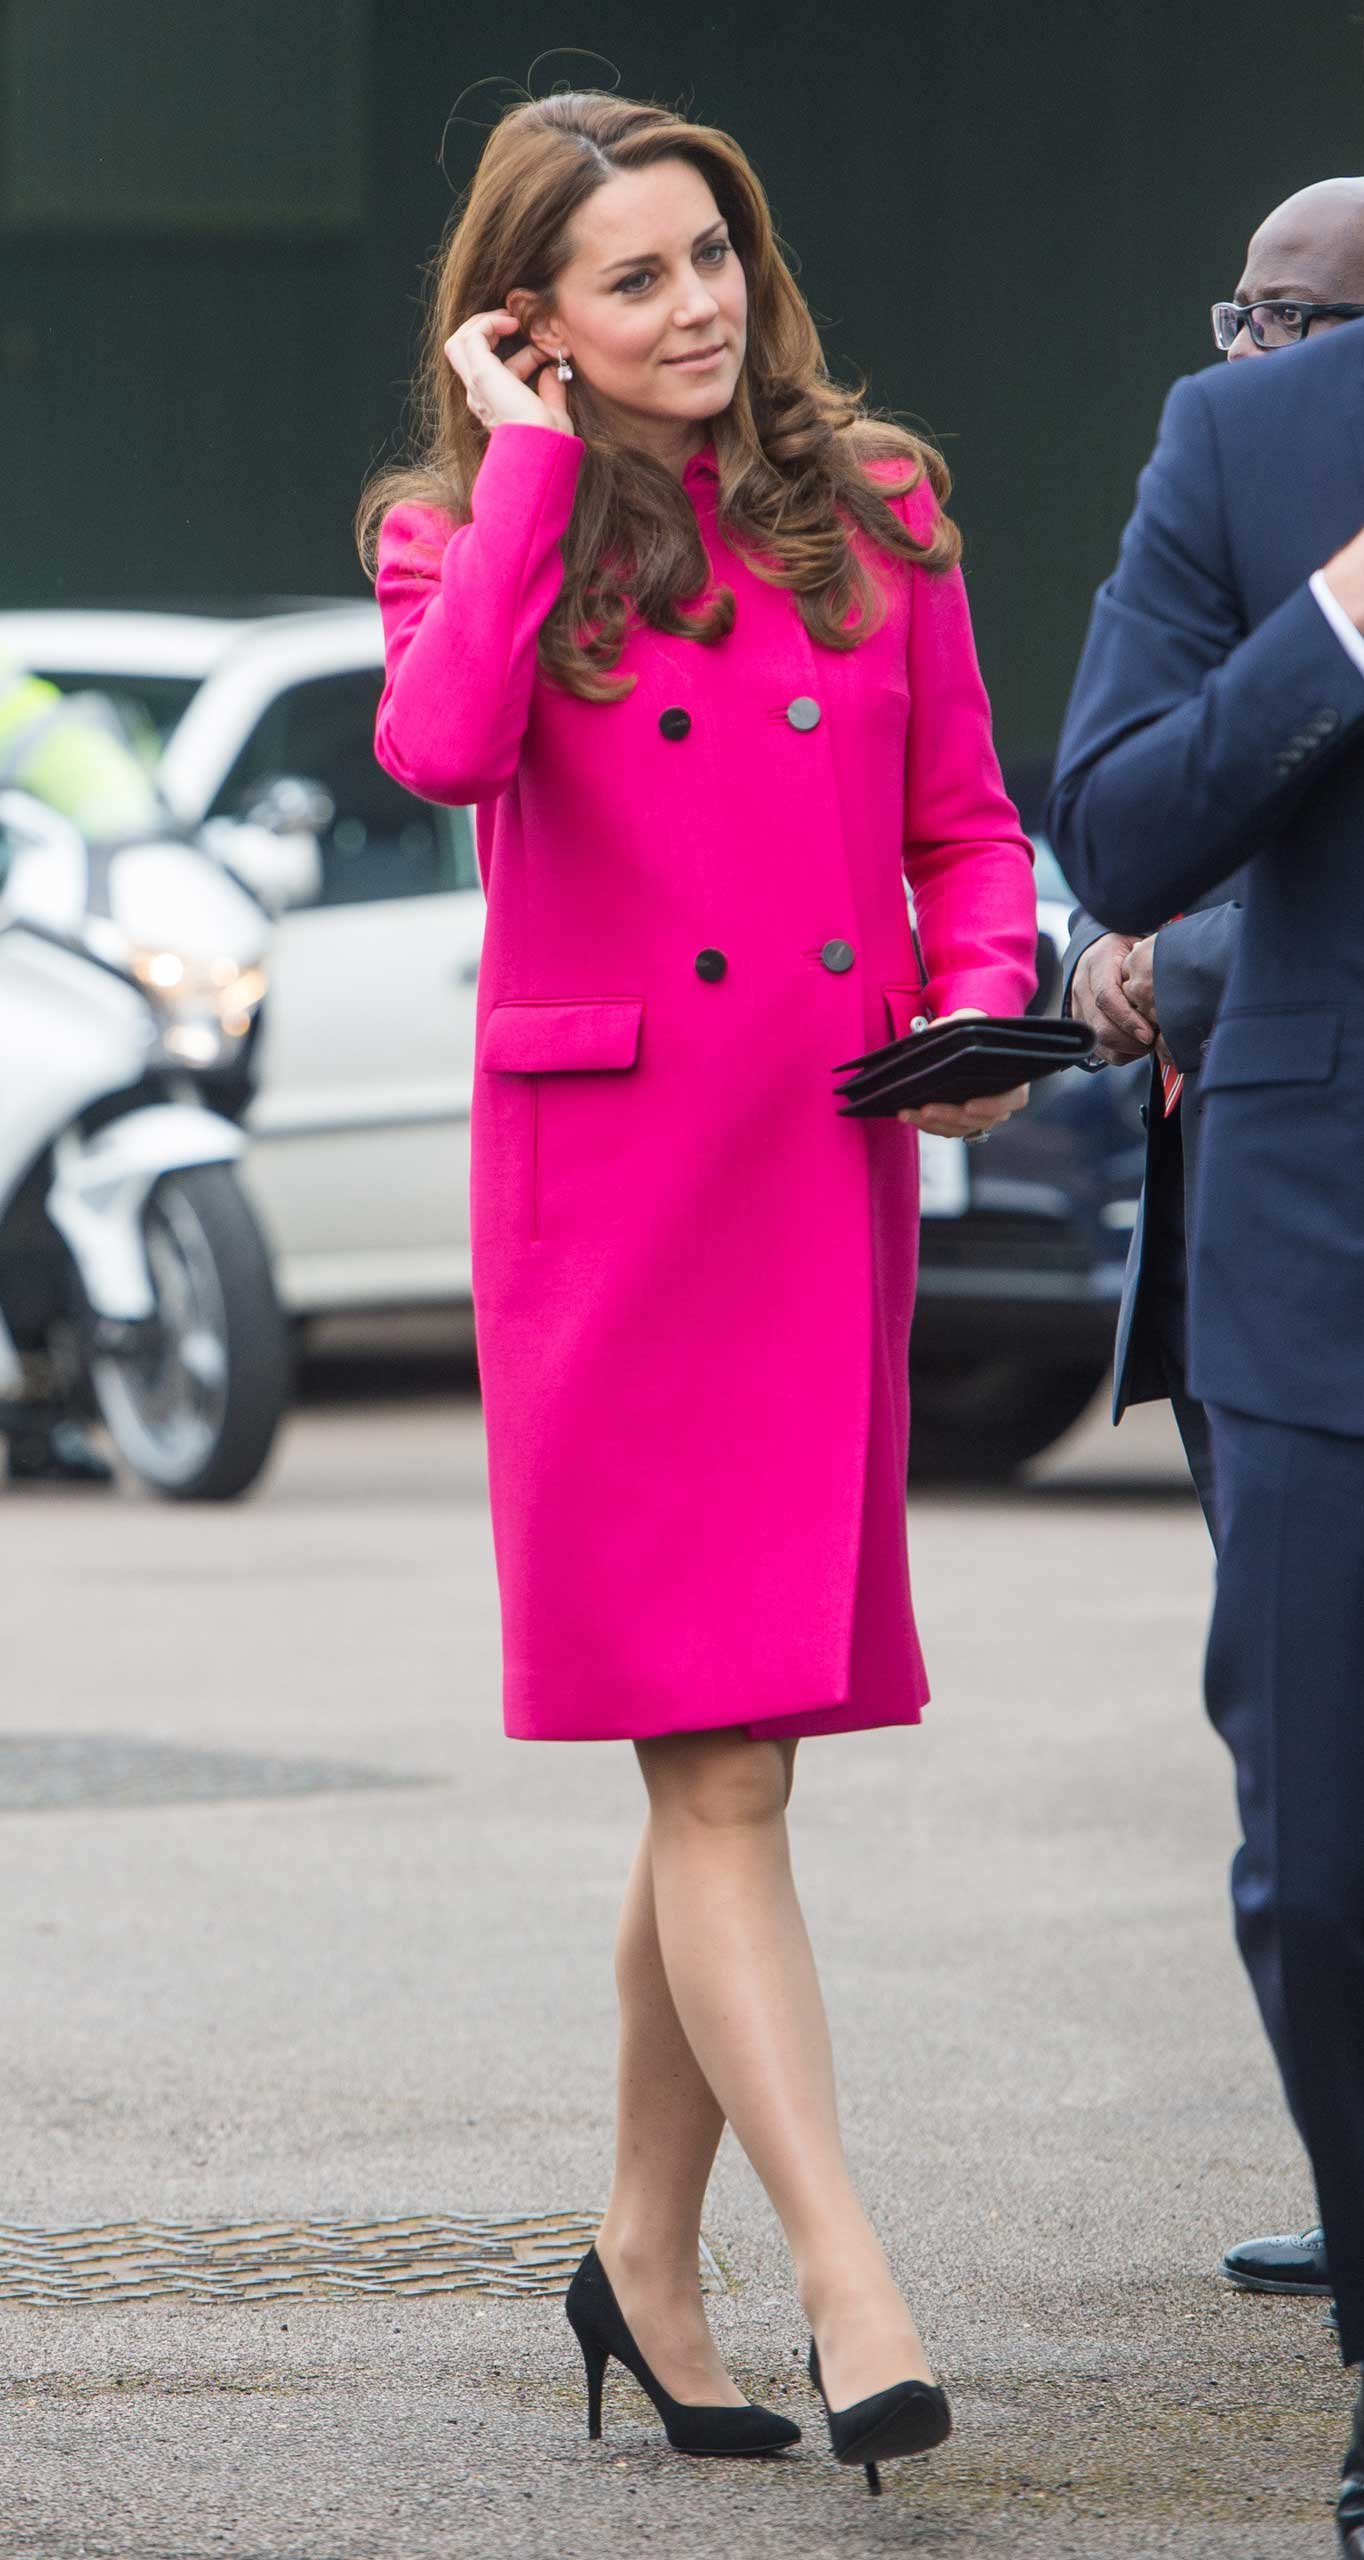 Catherine, Duchess of Cambridge visits the Stephen Lawrence Centre on March 27, 2015 in London, England.